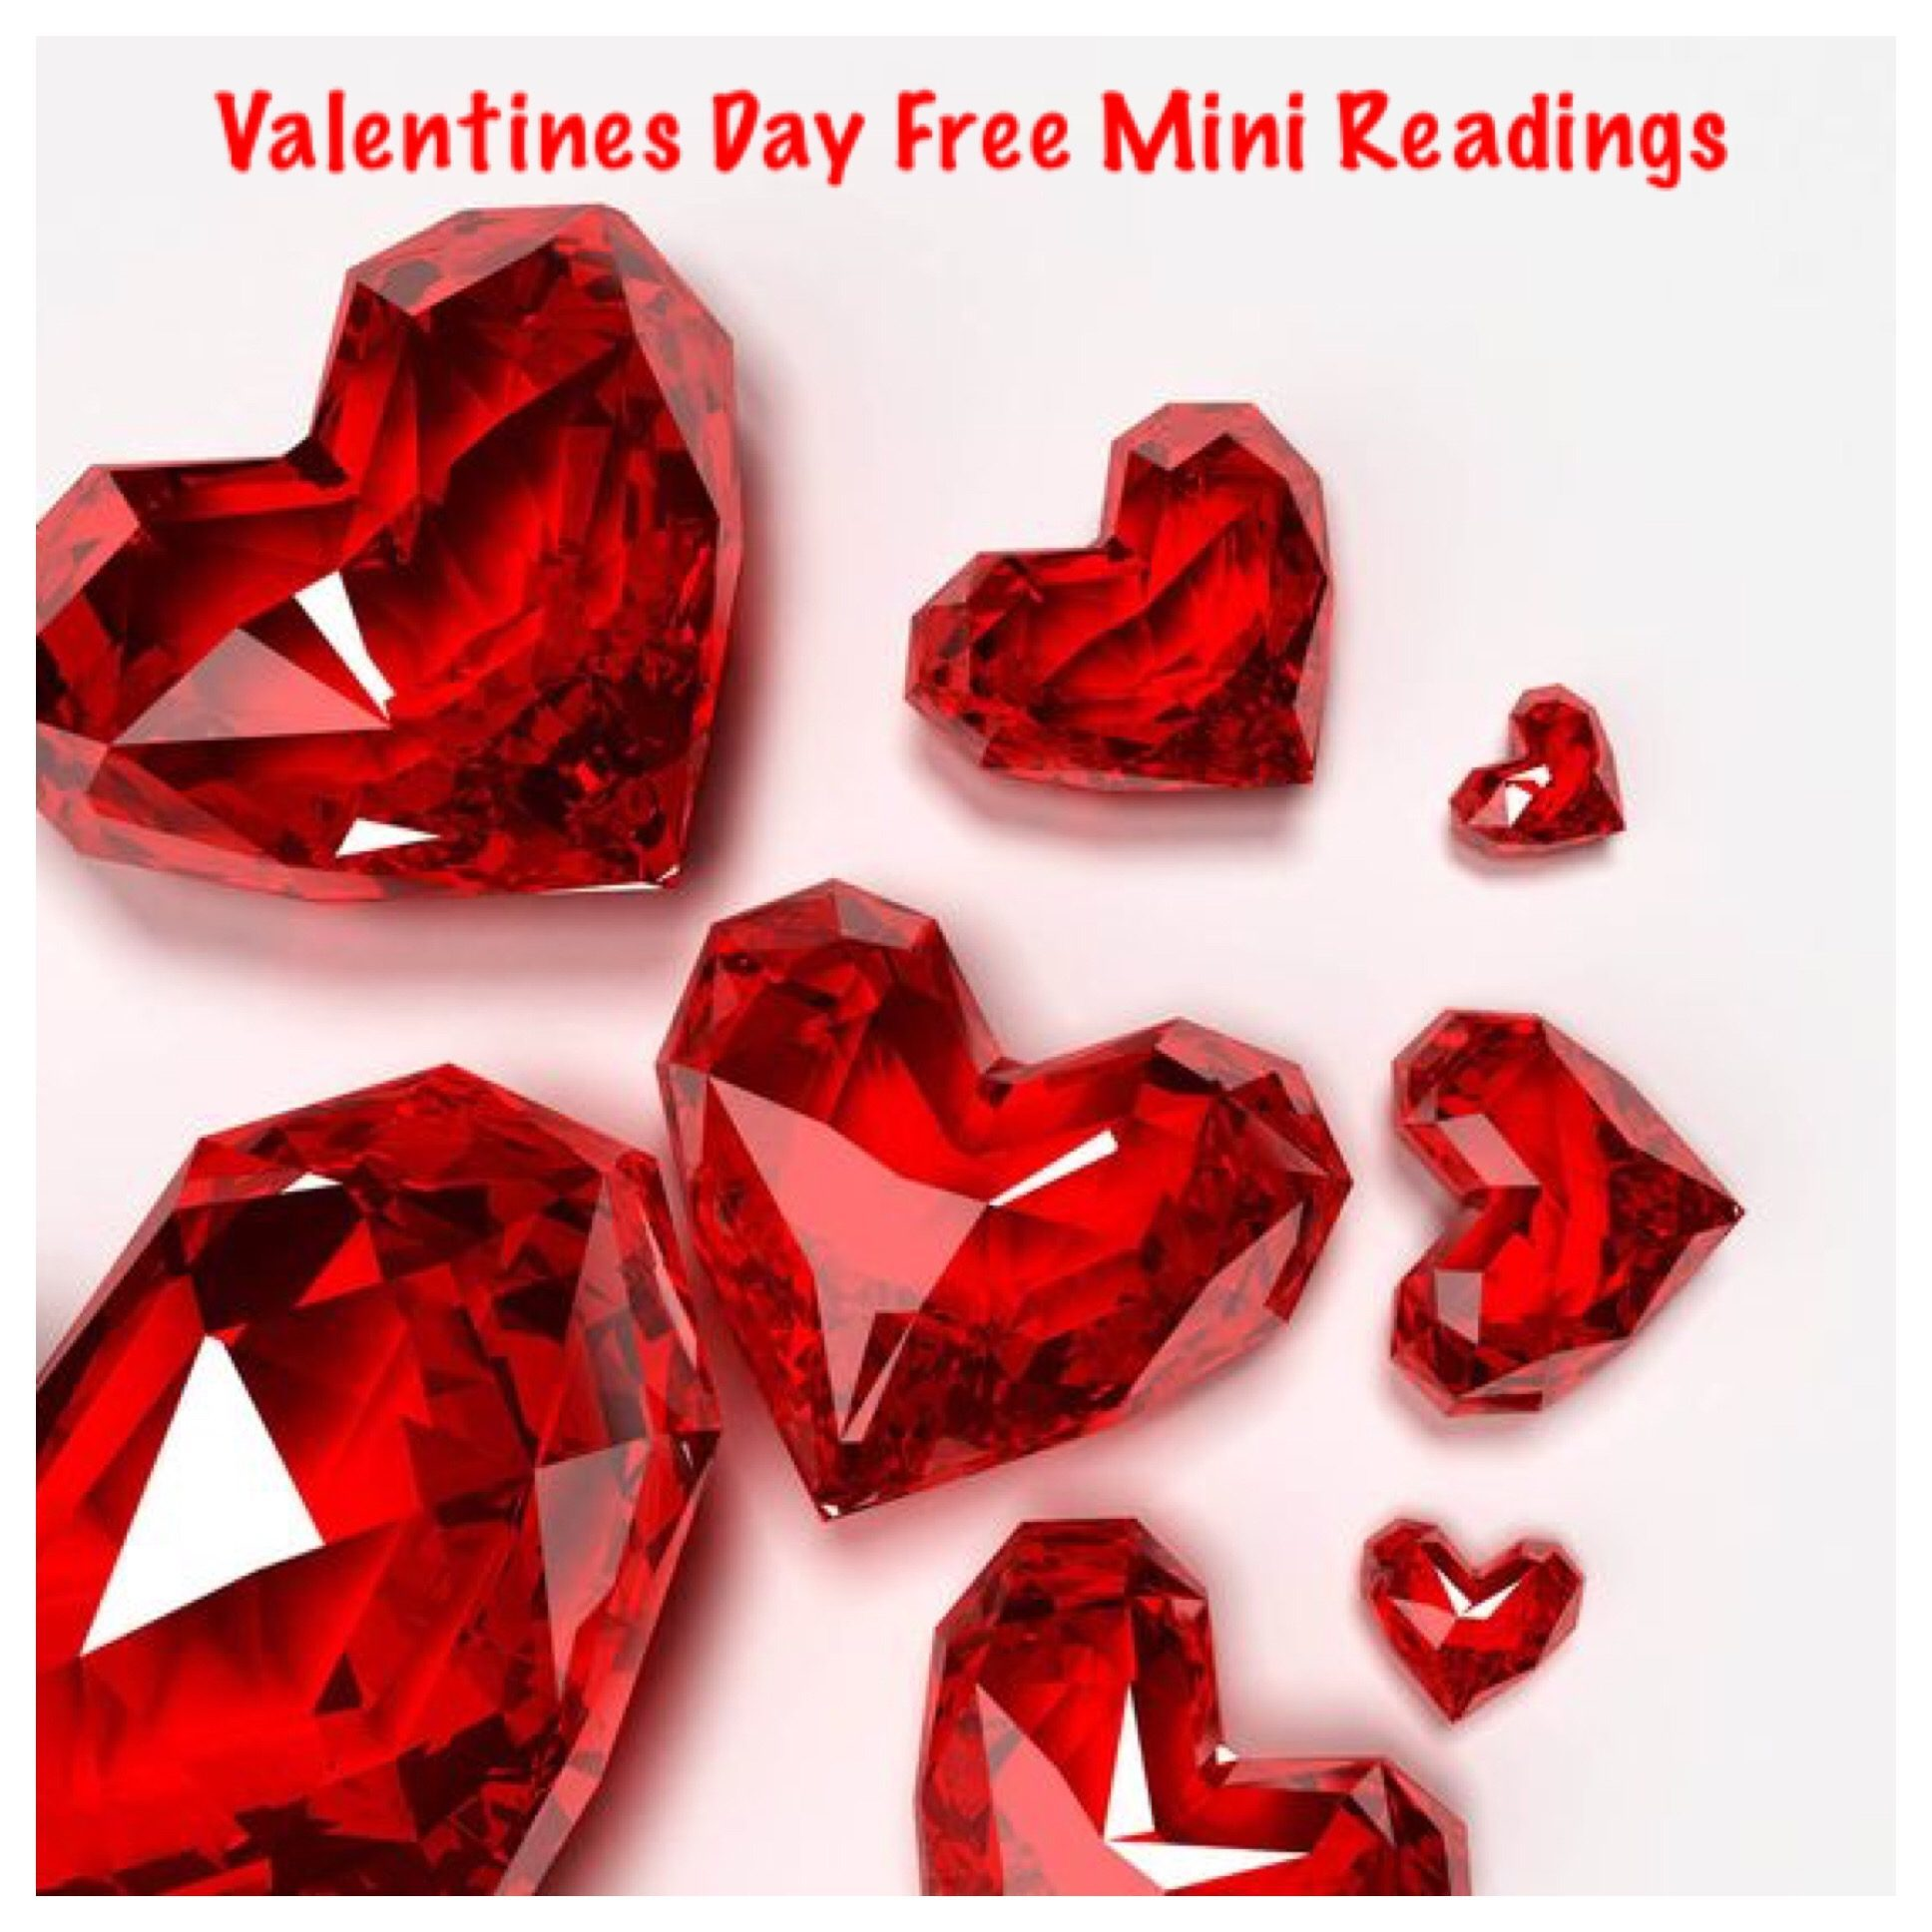 VALENTINES FREE MINI READINGS